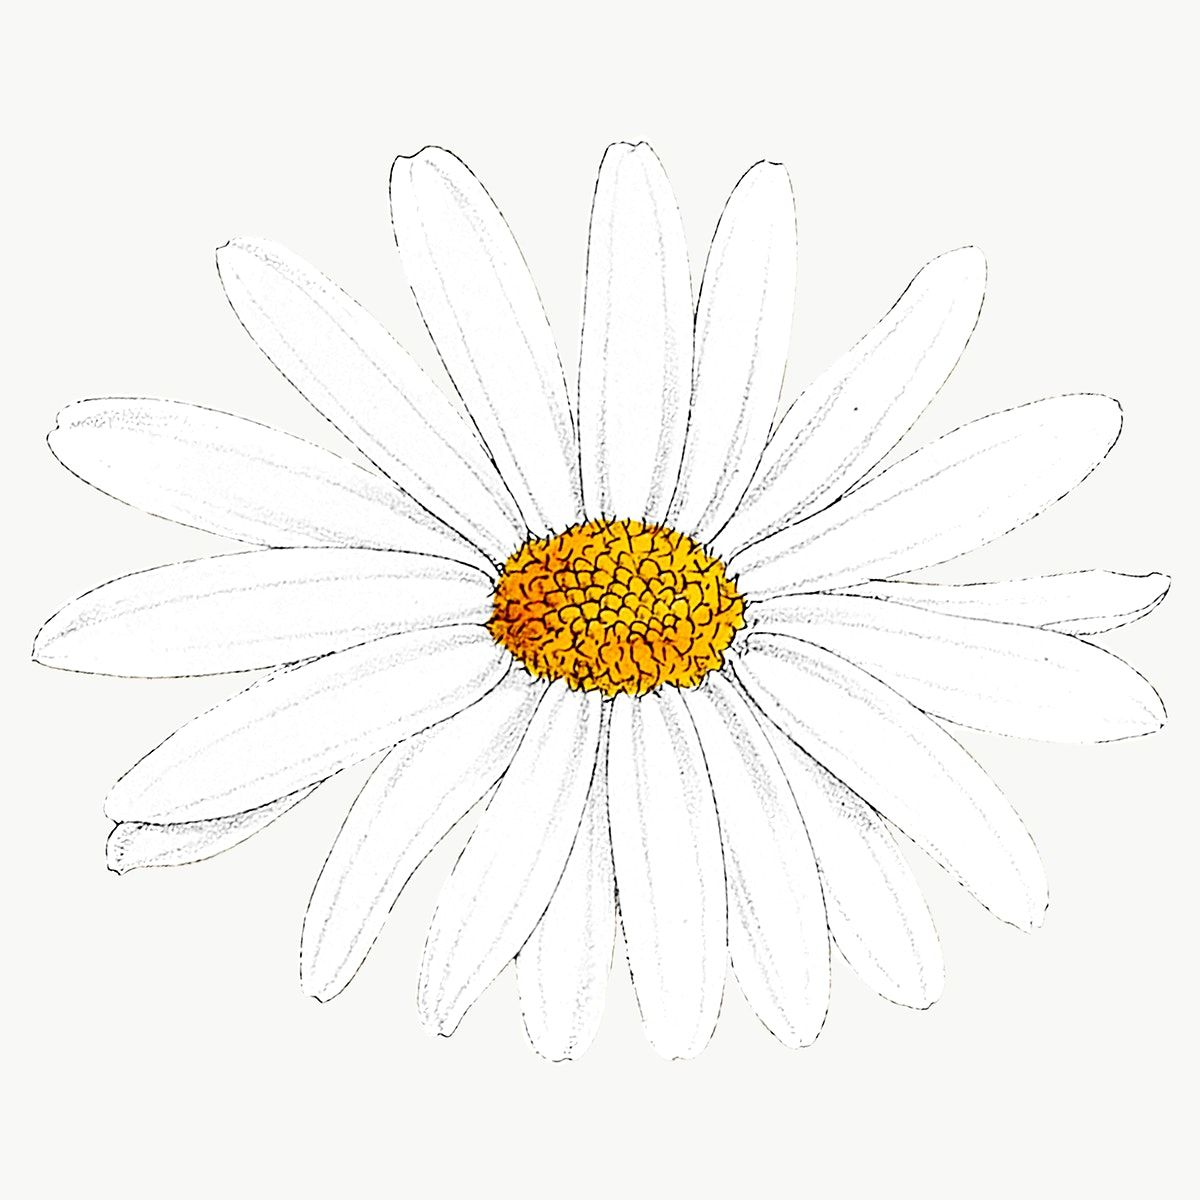 Hand Drawn White Flower Transparent Png Premium Image By Rawpixel Com Sasi Flowers Flower Illustration White Flowers